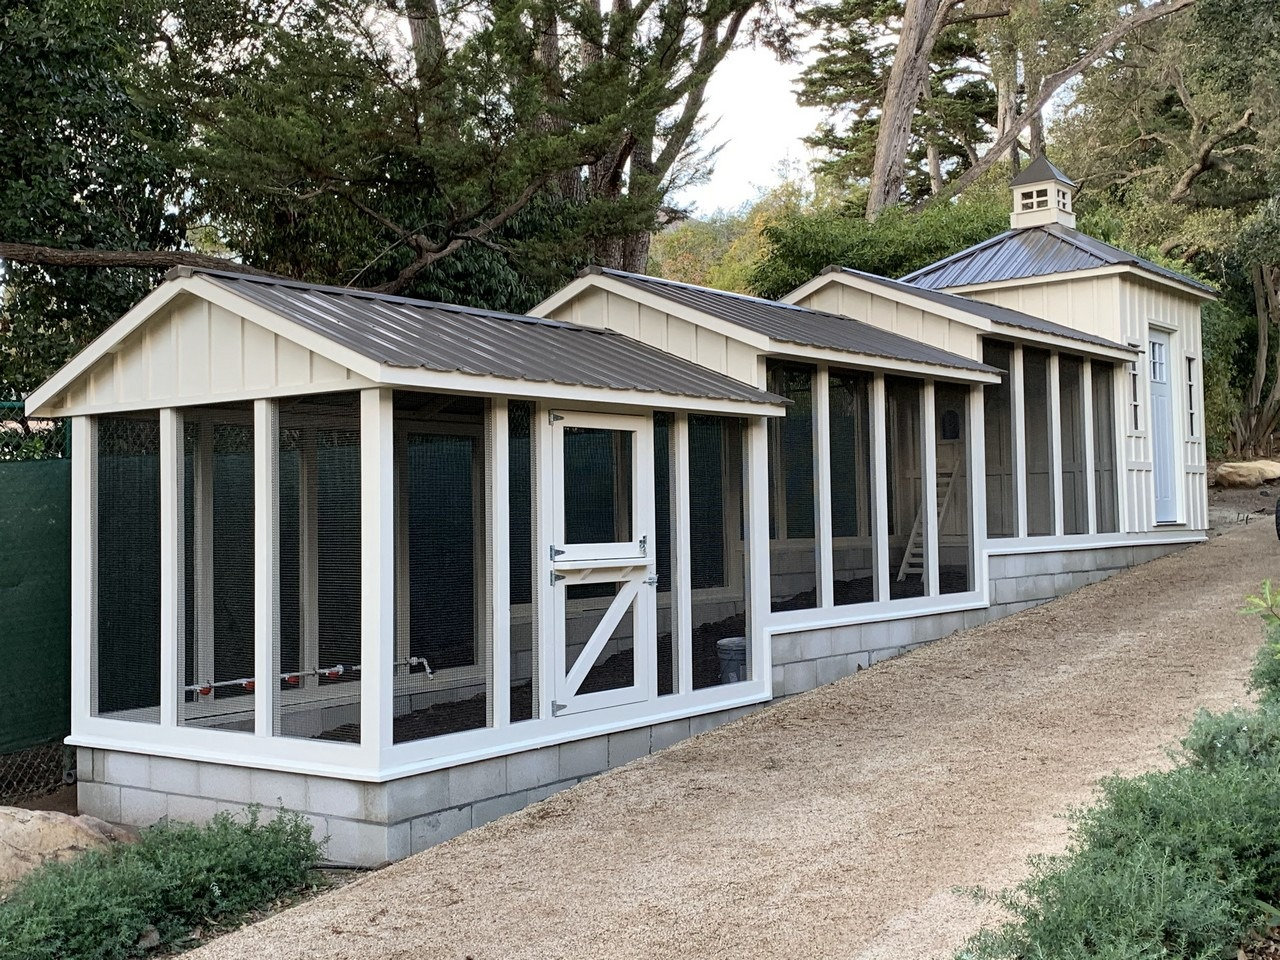 40-foot Craftsman Coop with Dutch door, board and batten siding, and 31.5 foot chicken run in Santa Barbara, CA